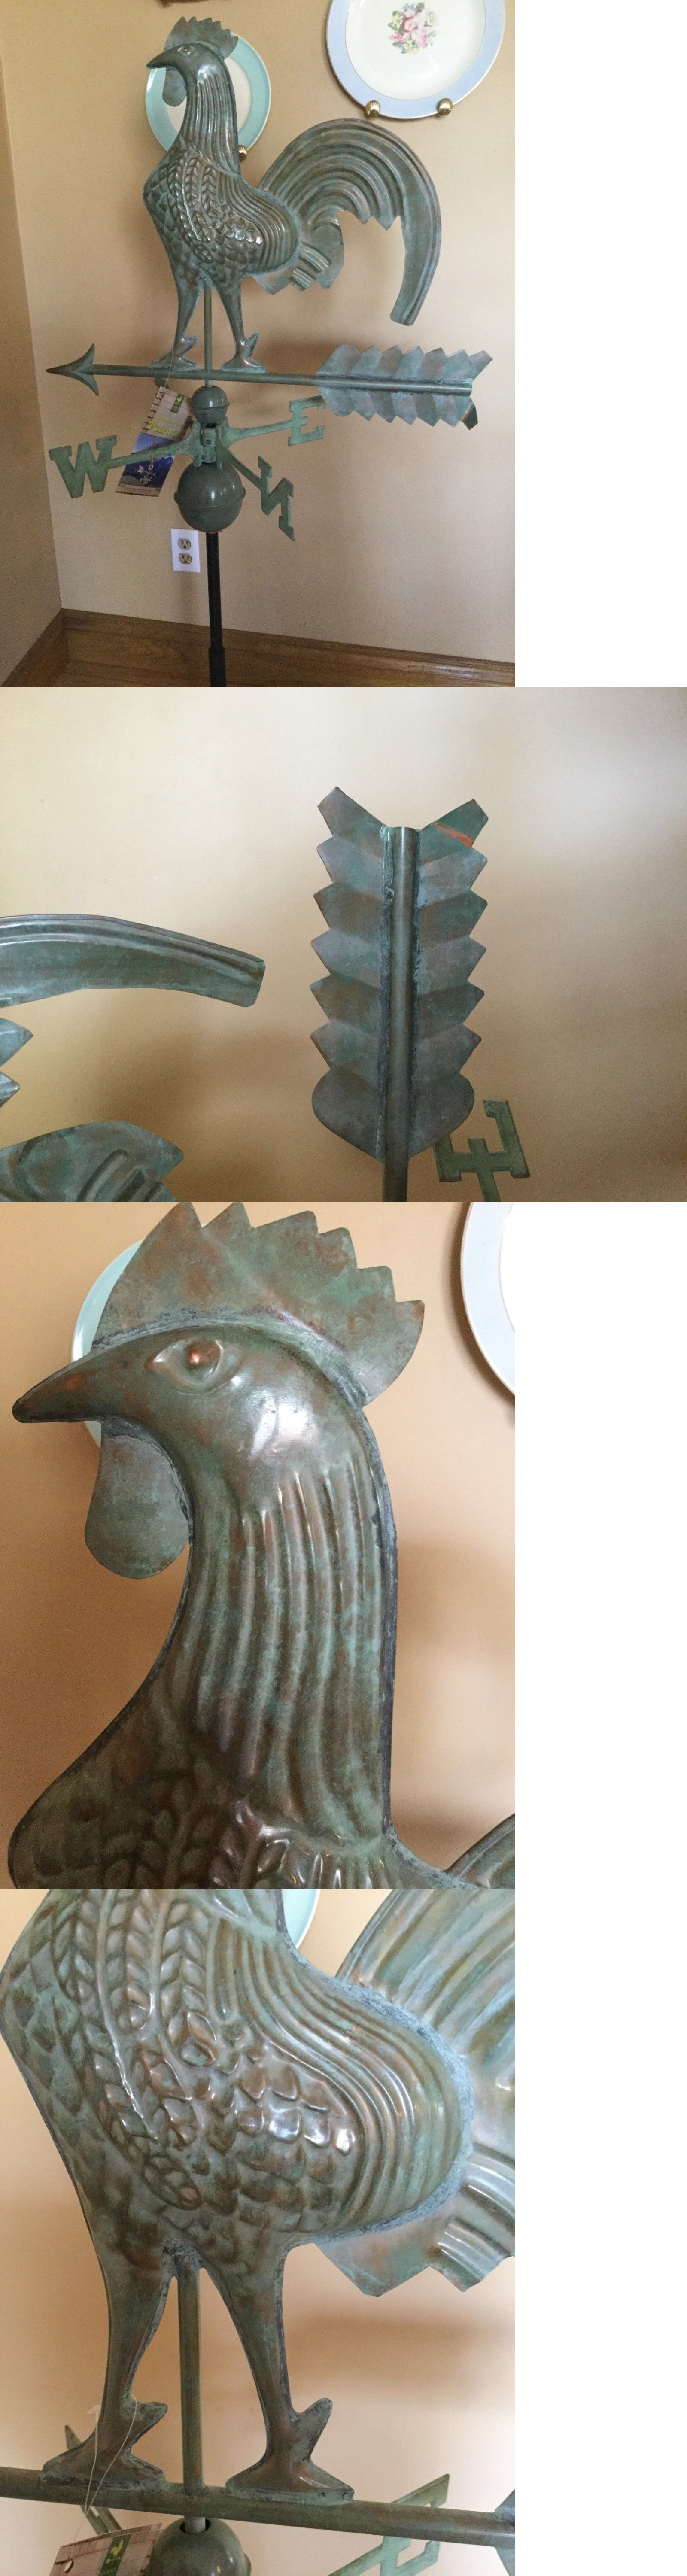 Weathervanes 20512 Good Directions Blue Verde Copper Rooster Weathervane With Roof Mount 501v1r Buy It Now On Copper Rooster Weathervanes Good Directions